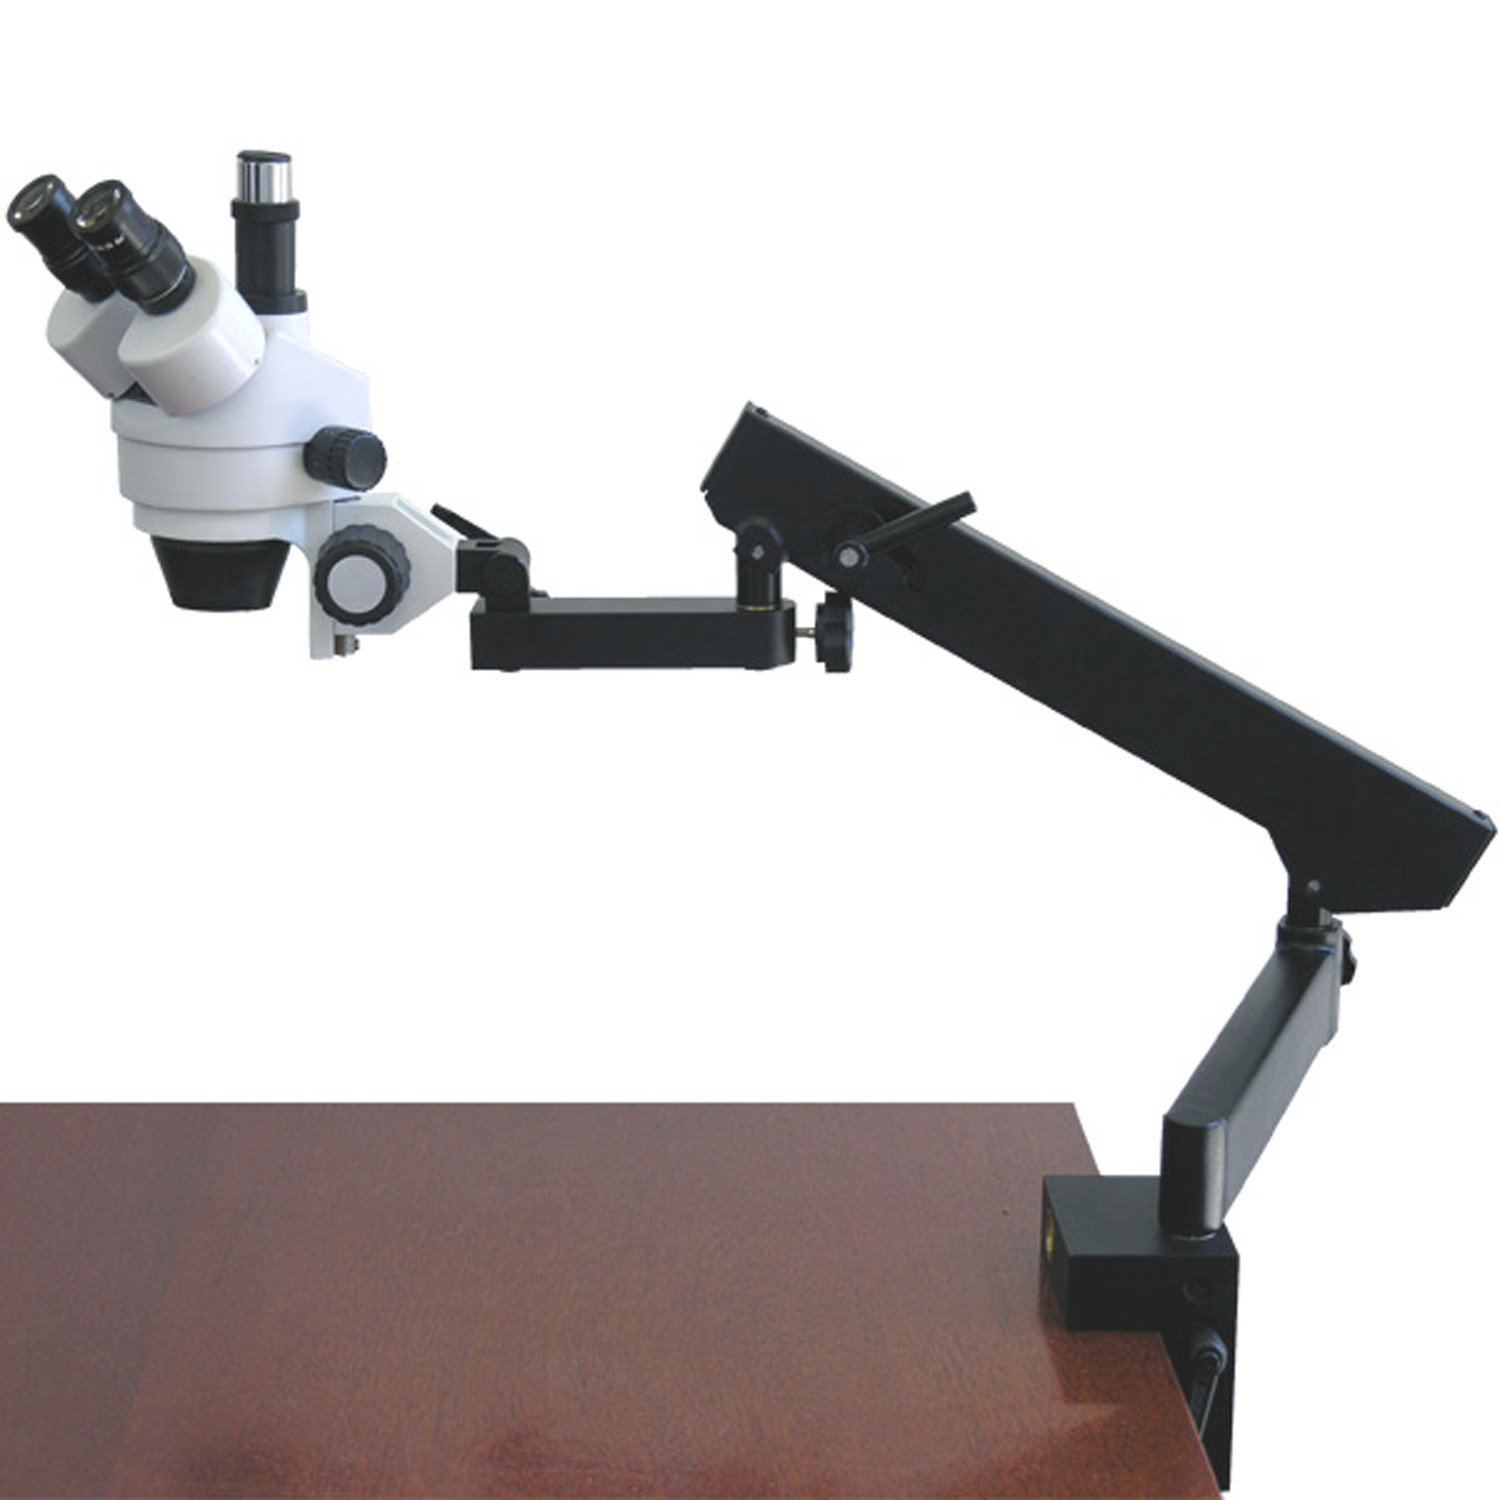 AmScope SM-6TX Professional Trinocular Stereo Zoom Microscope, WH10x Eyepieces, 3.5X-45X Magnification, 0.7X-4.5X Zoom Objective, Ambient Lighting, Clamping Articulating Arm Stand, Includes 0.5X Barlow Lens by AmScope